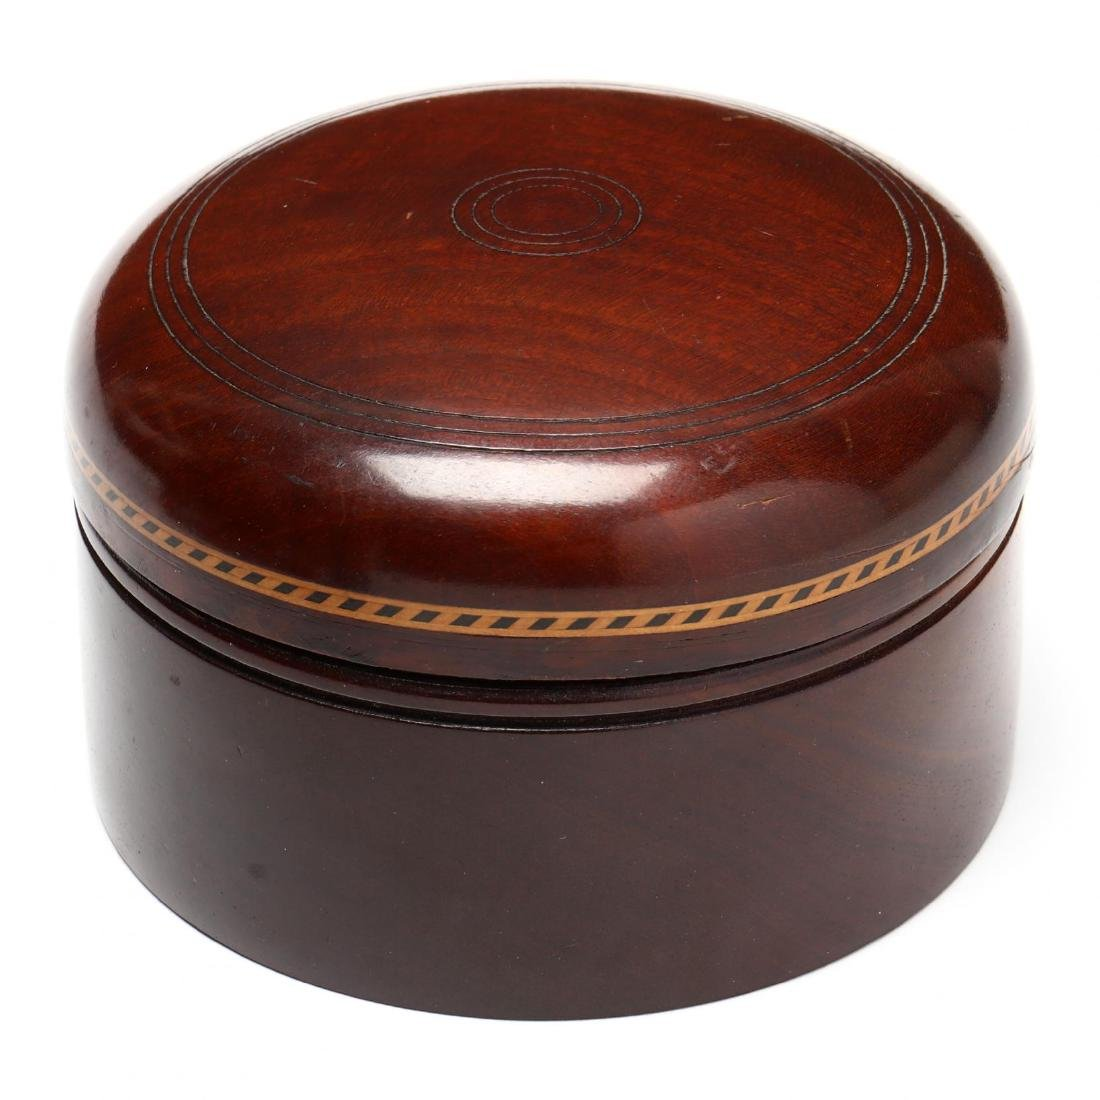 George III Inlaid Miniature Chest and Lidded Box - 3